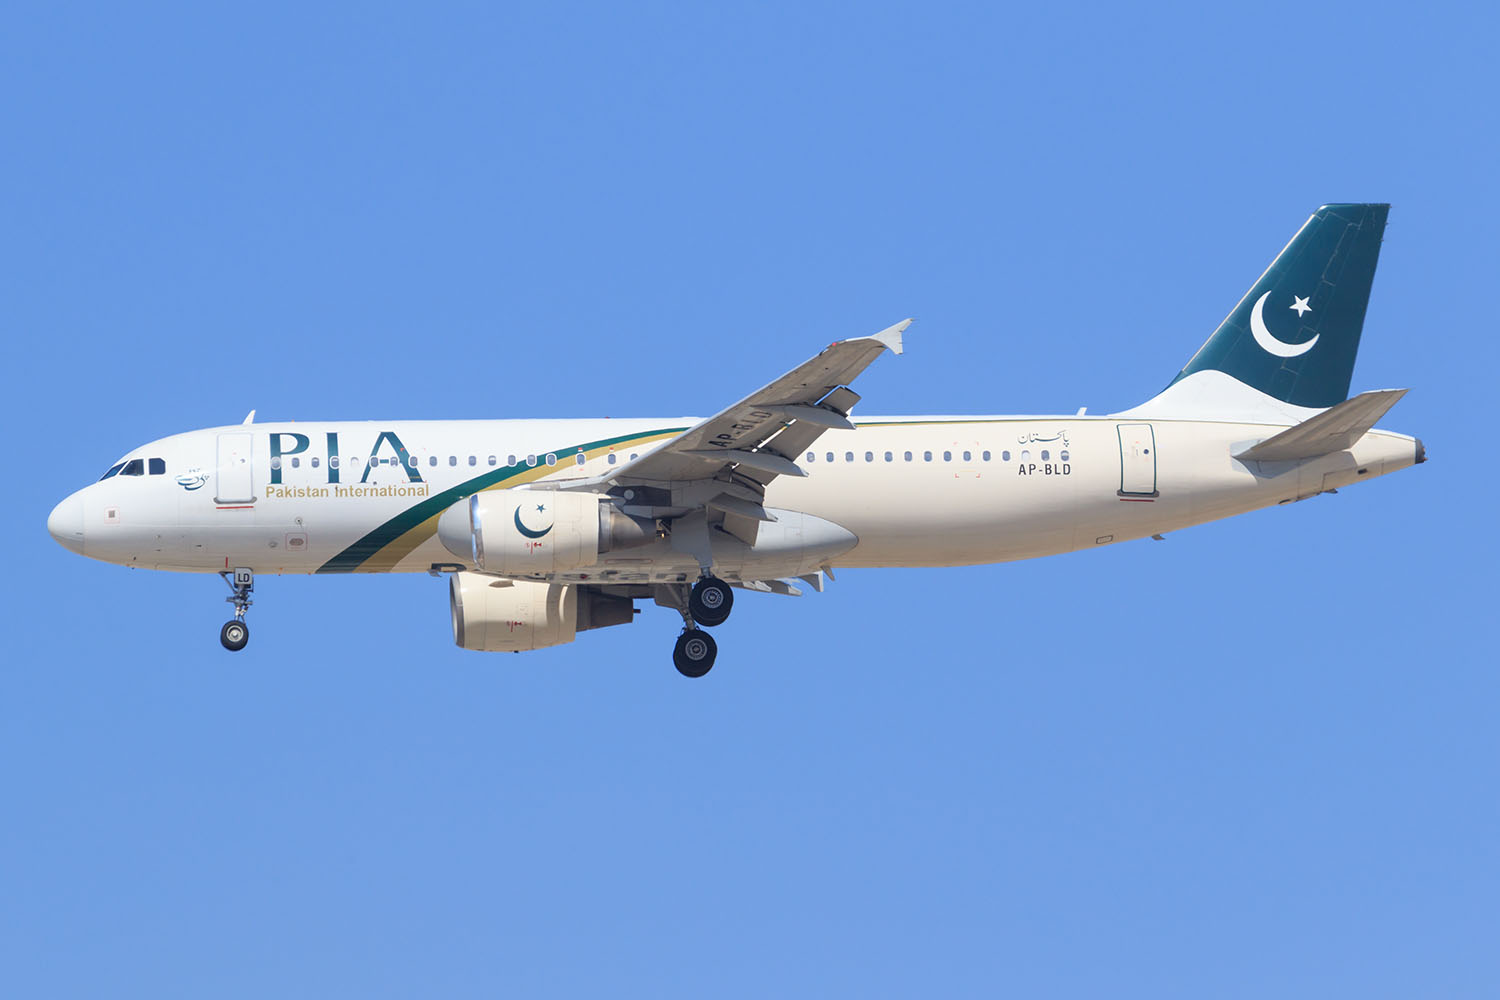 A Pakistan International Airlines A320